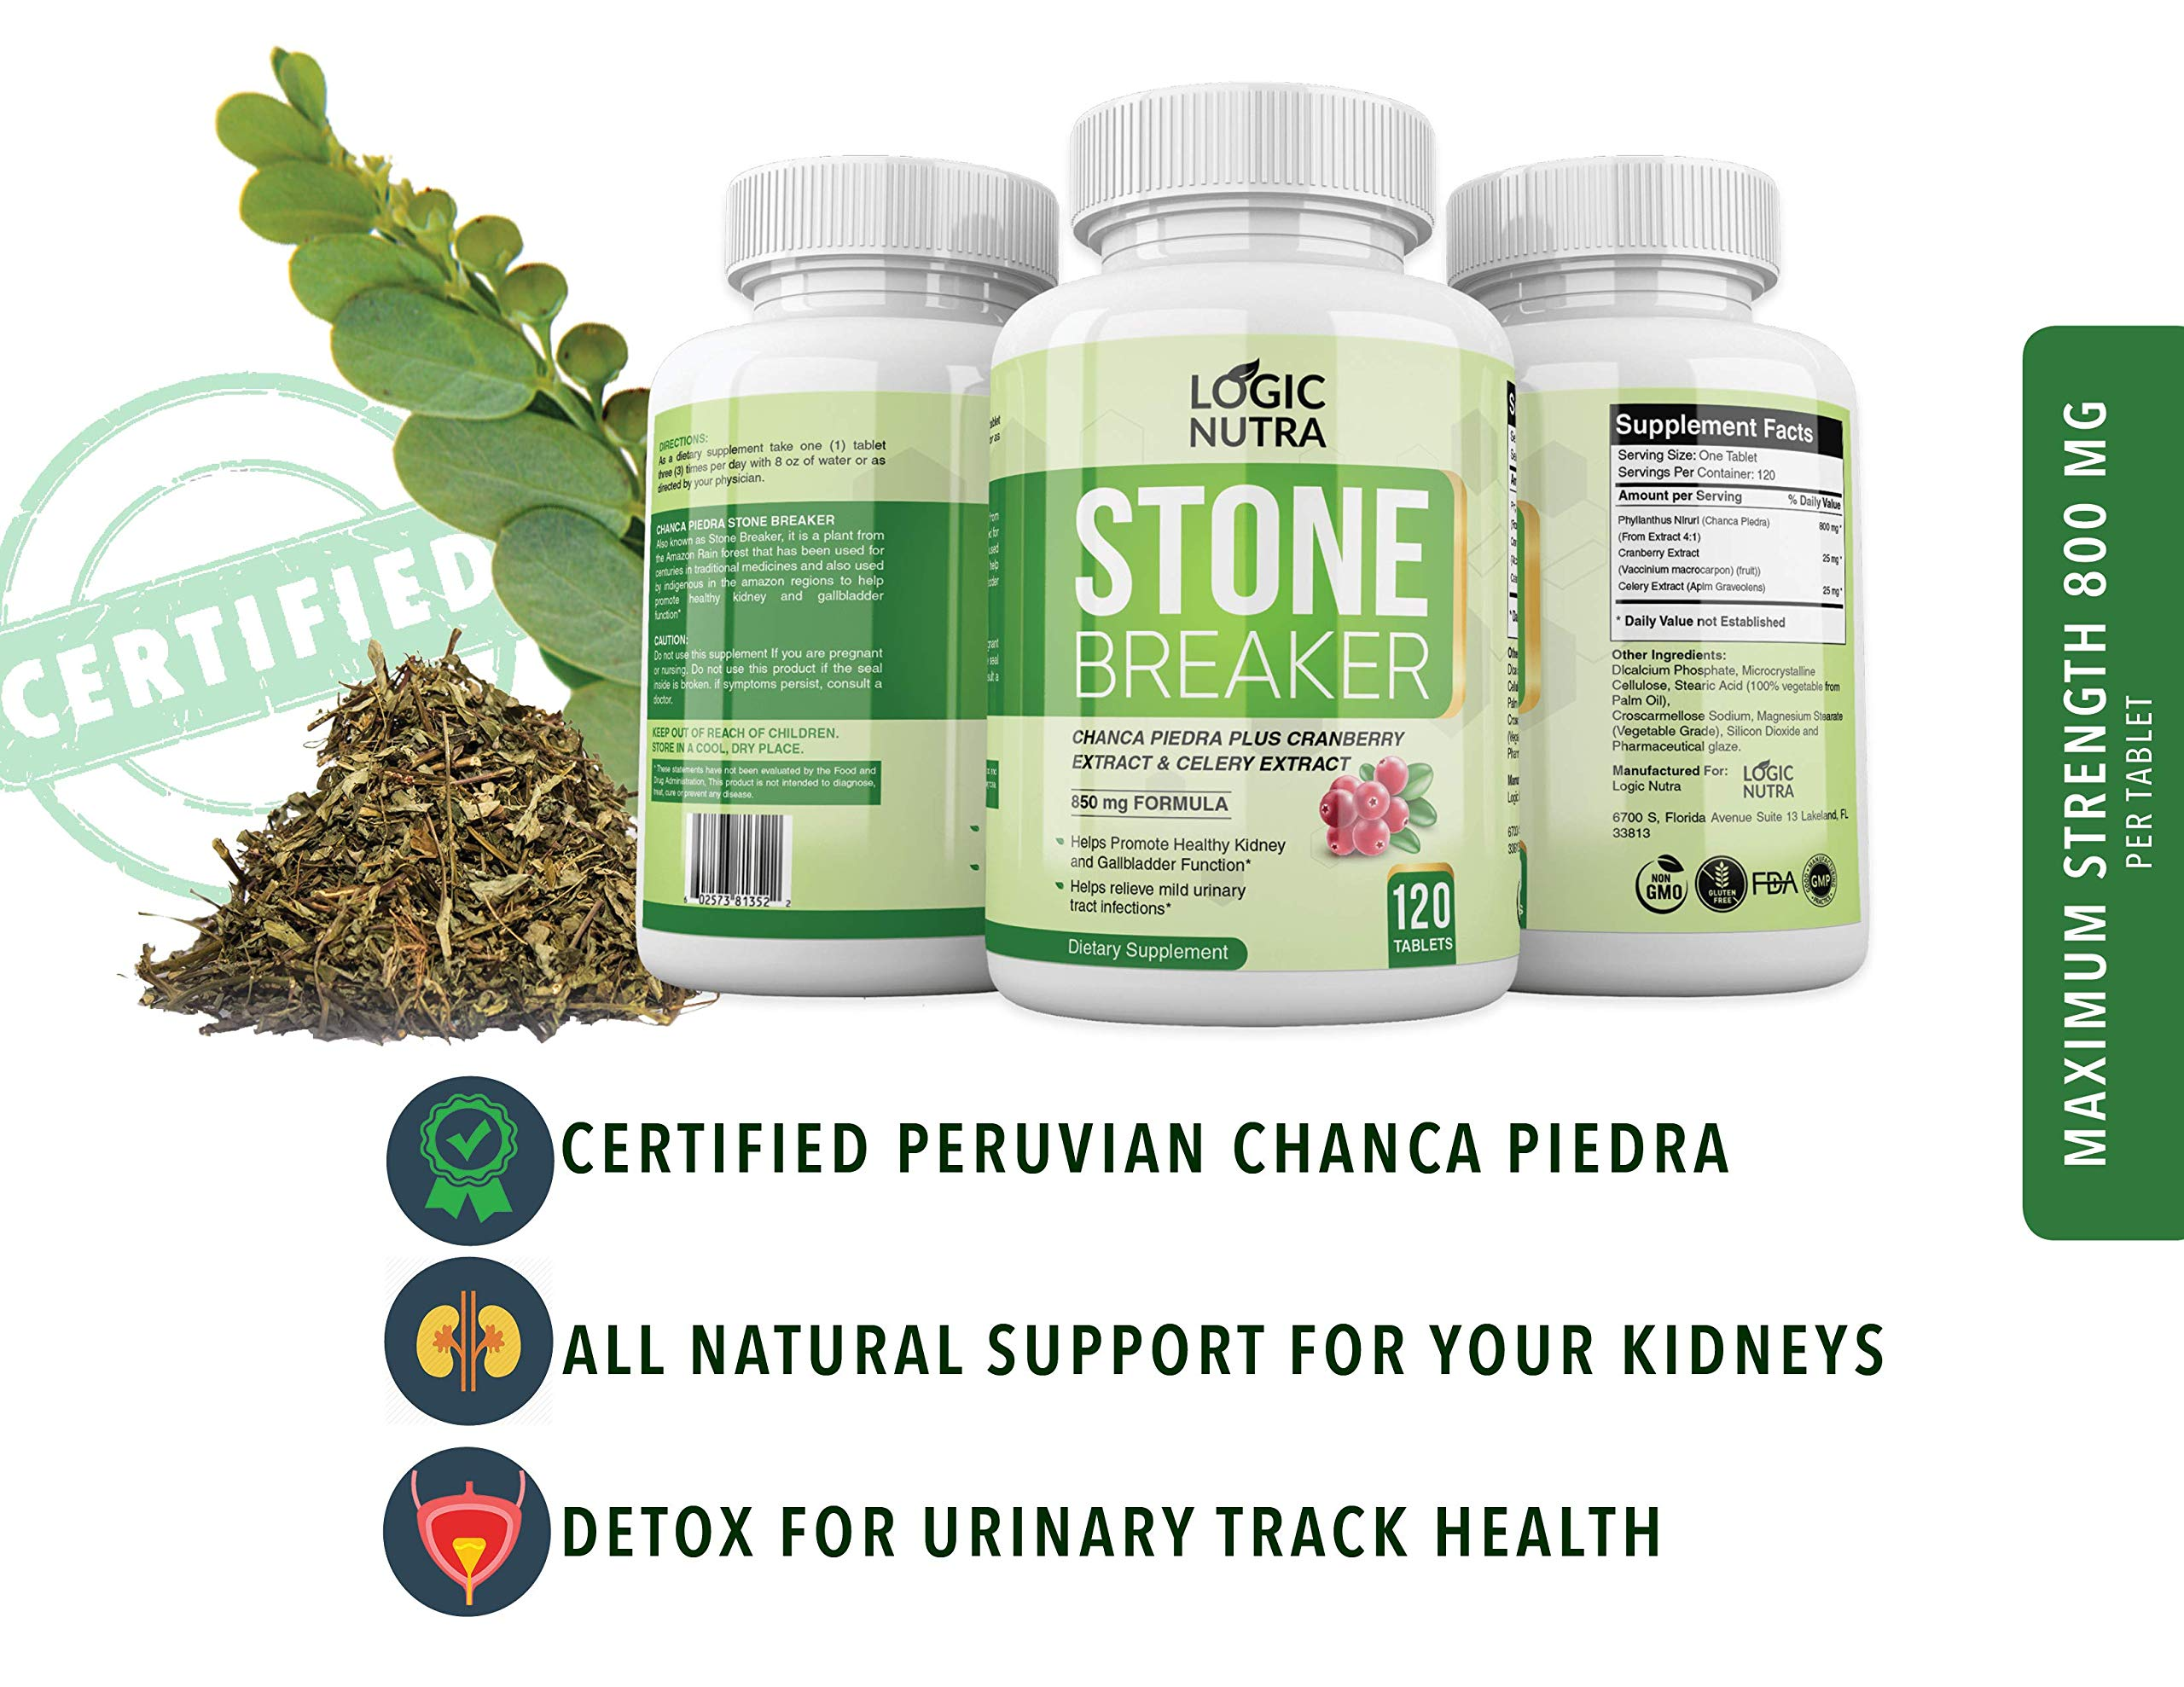 Amazon Com Chanca Piedra Kidney Stone Breaker By Logic Nutra 120 Tablets 800 Mg Each Maximum Strength For Gallbladder Cleanse Urinary Pain Relief Health Personal Care